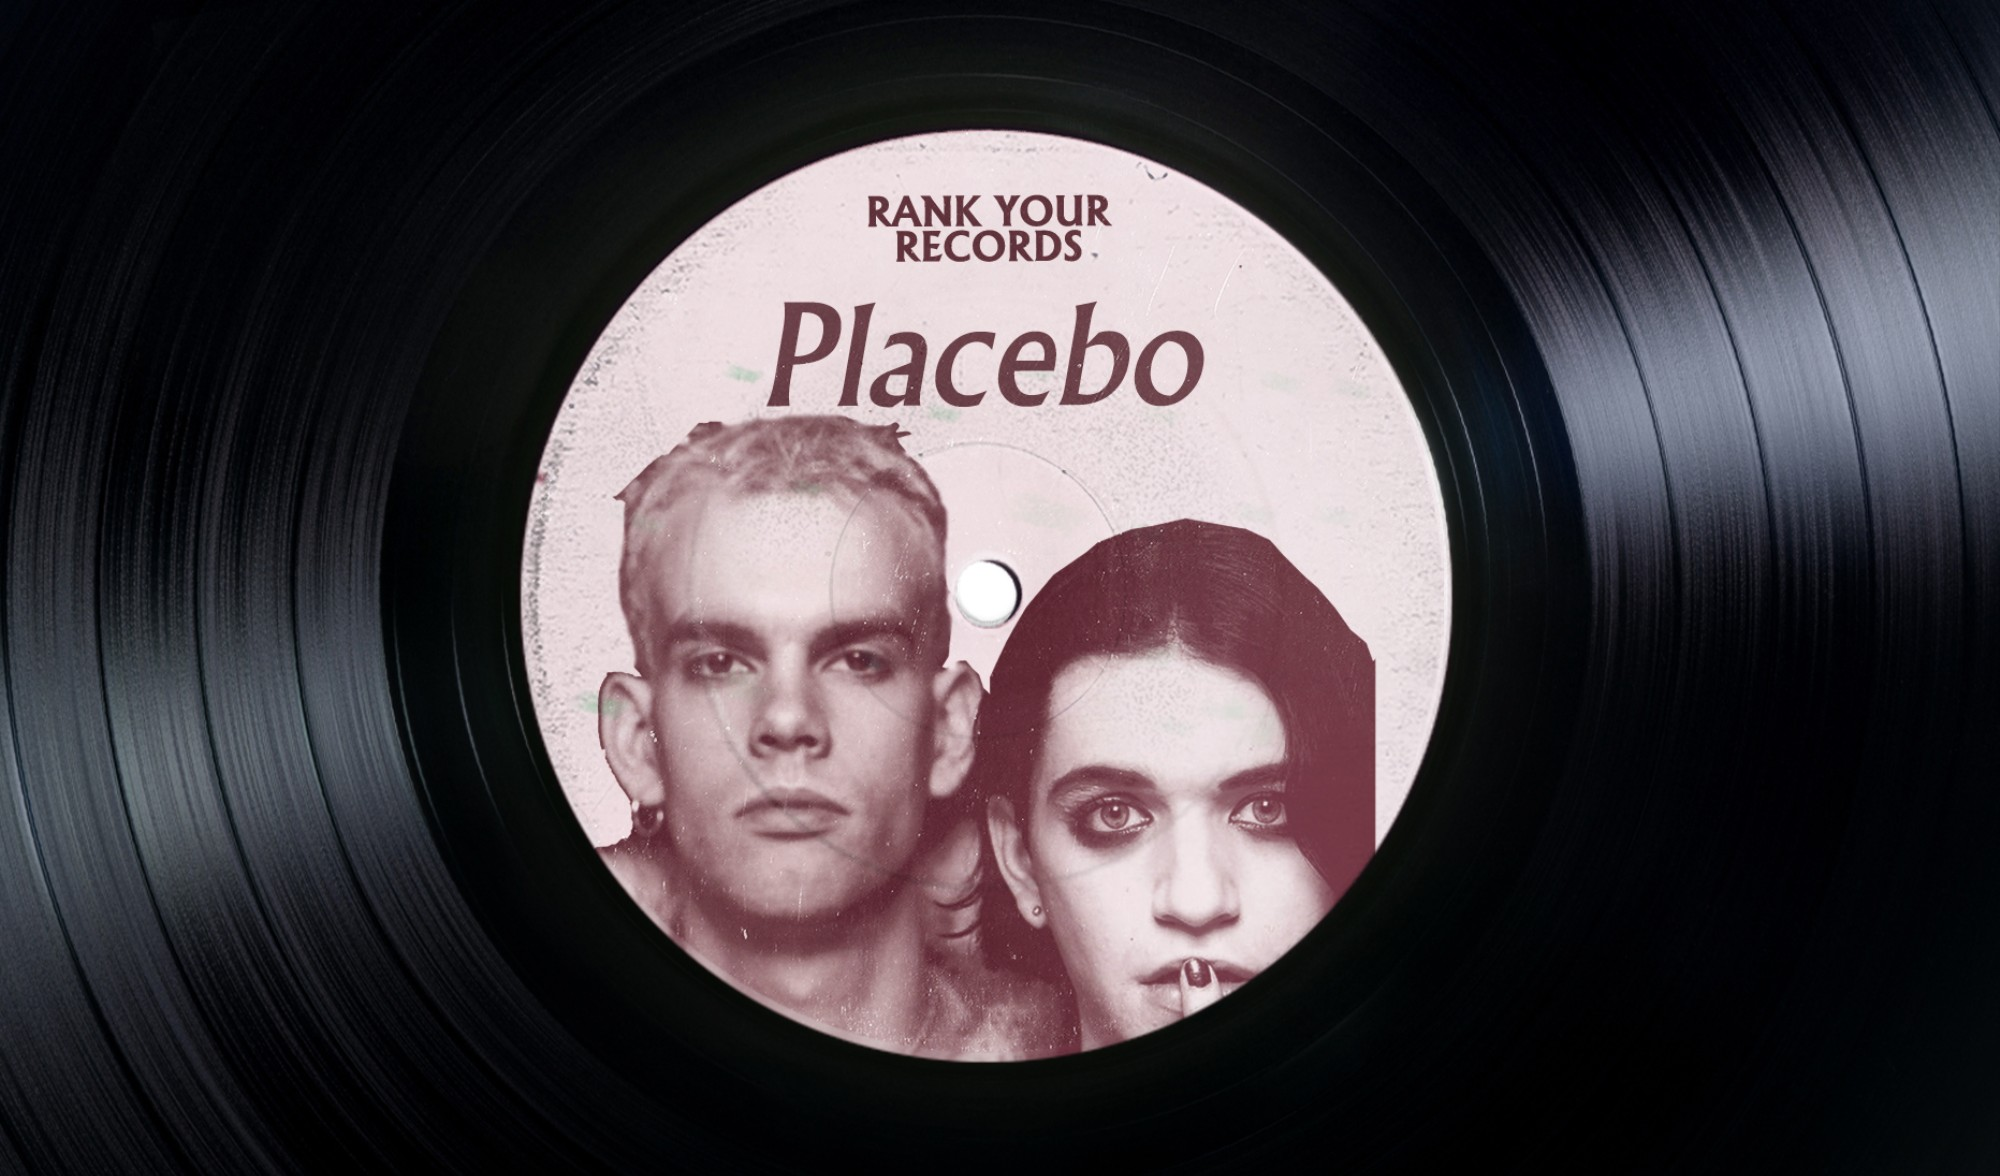 Rank Your Records: Brian Molko Skeptically Rates Placebo's Eight LPs